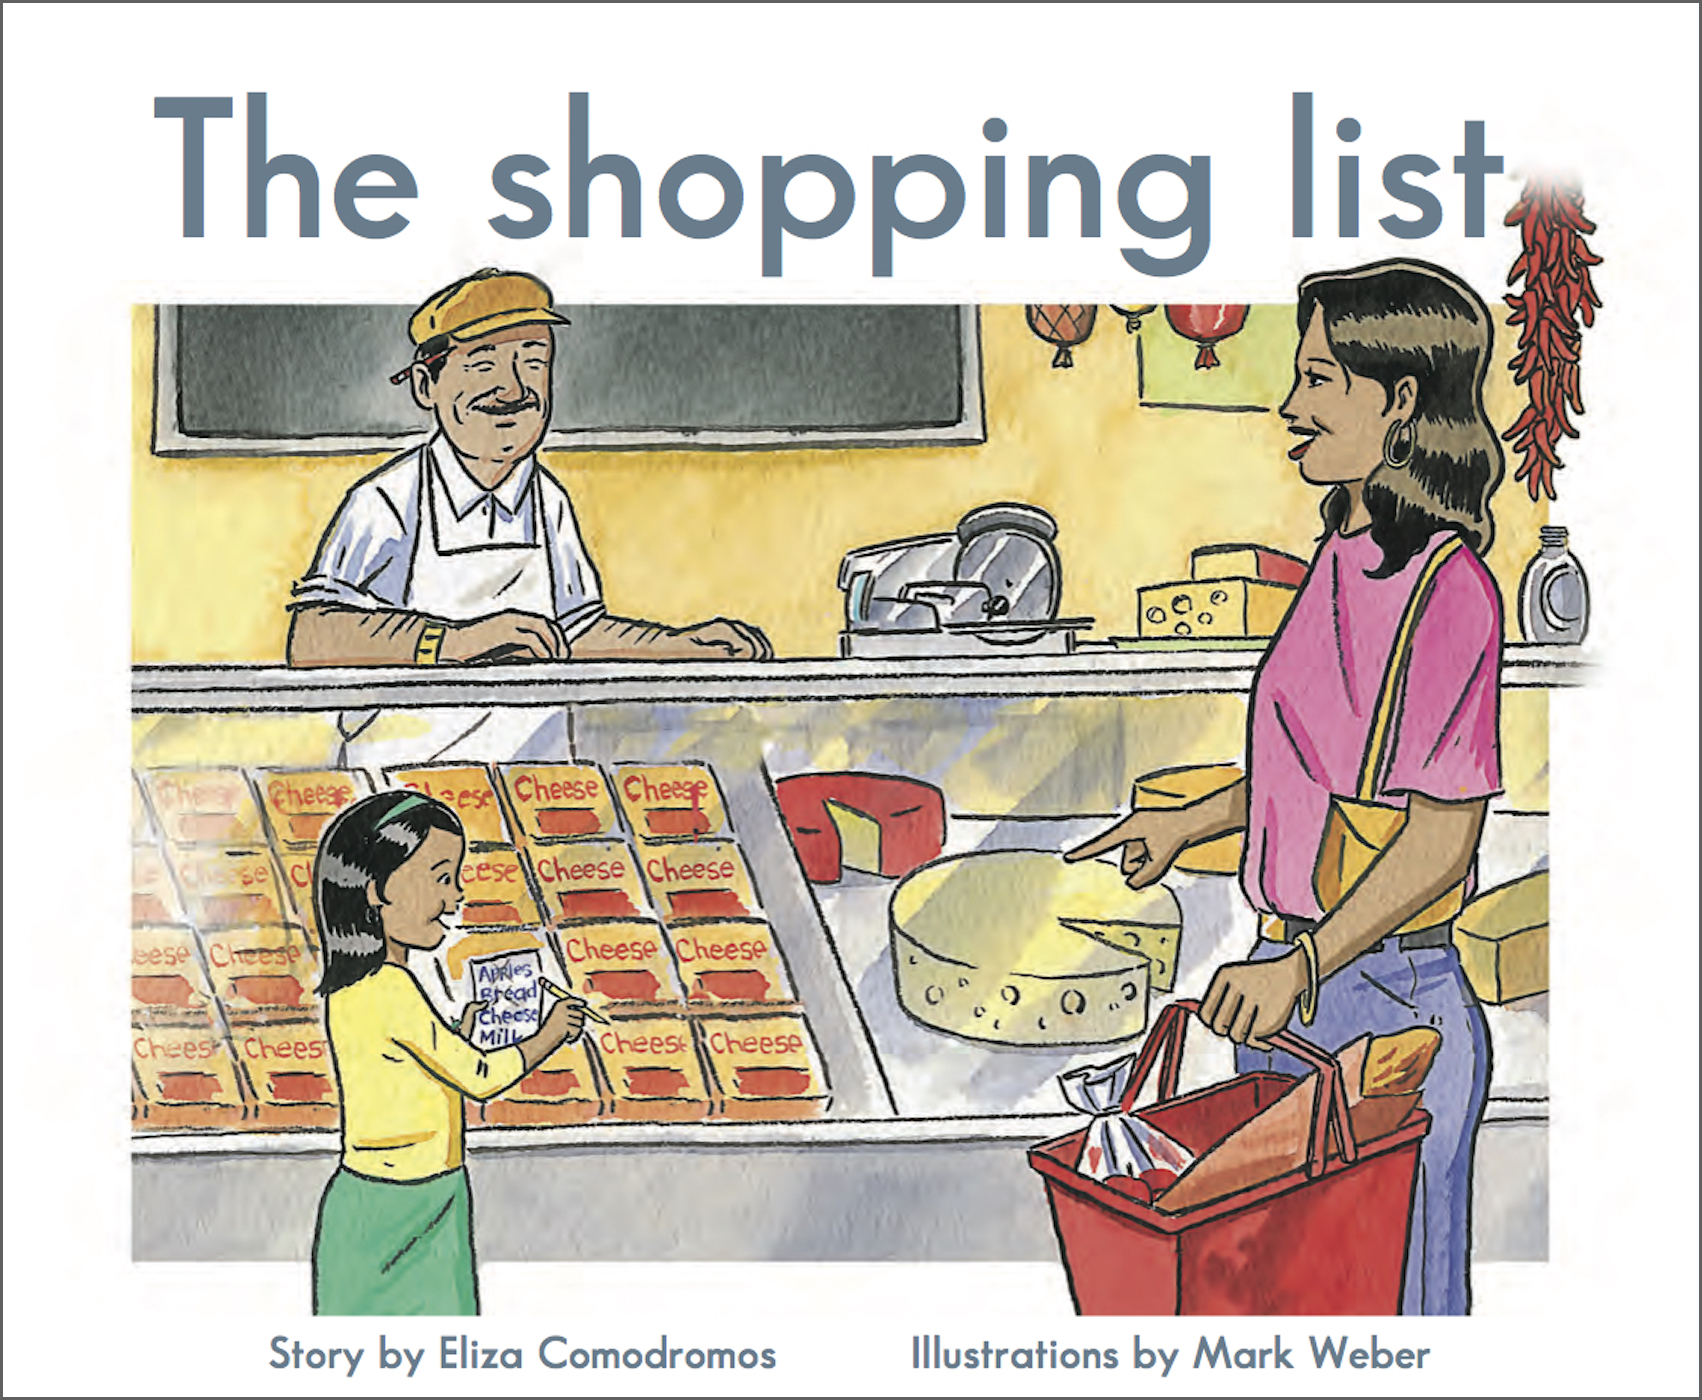 The shopping list